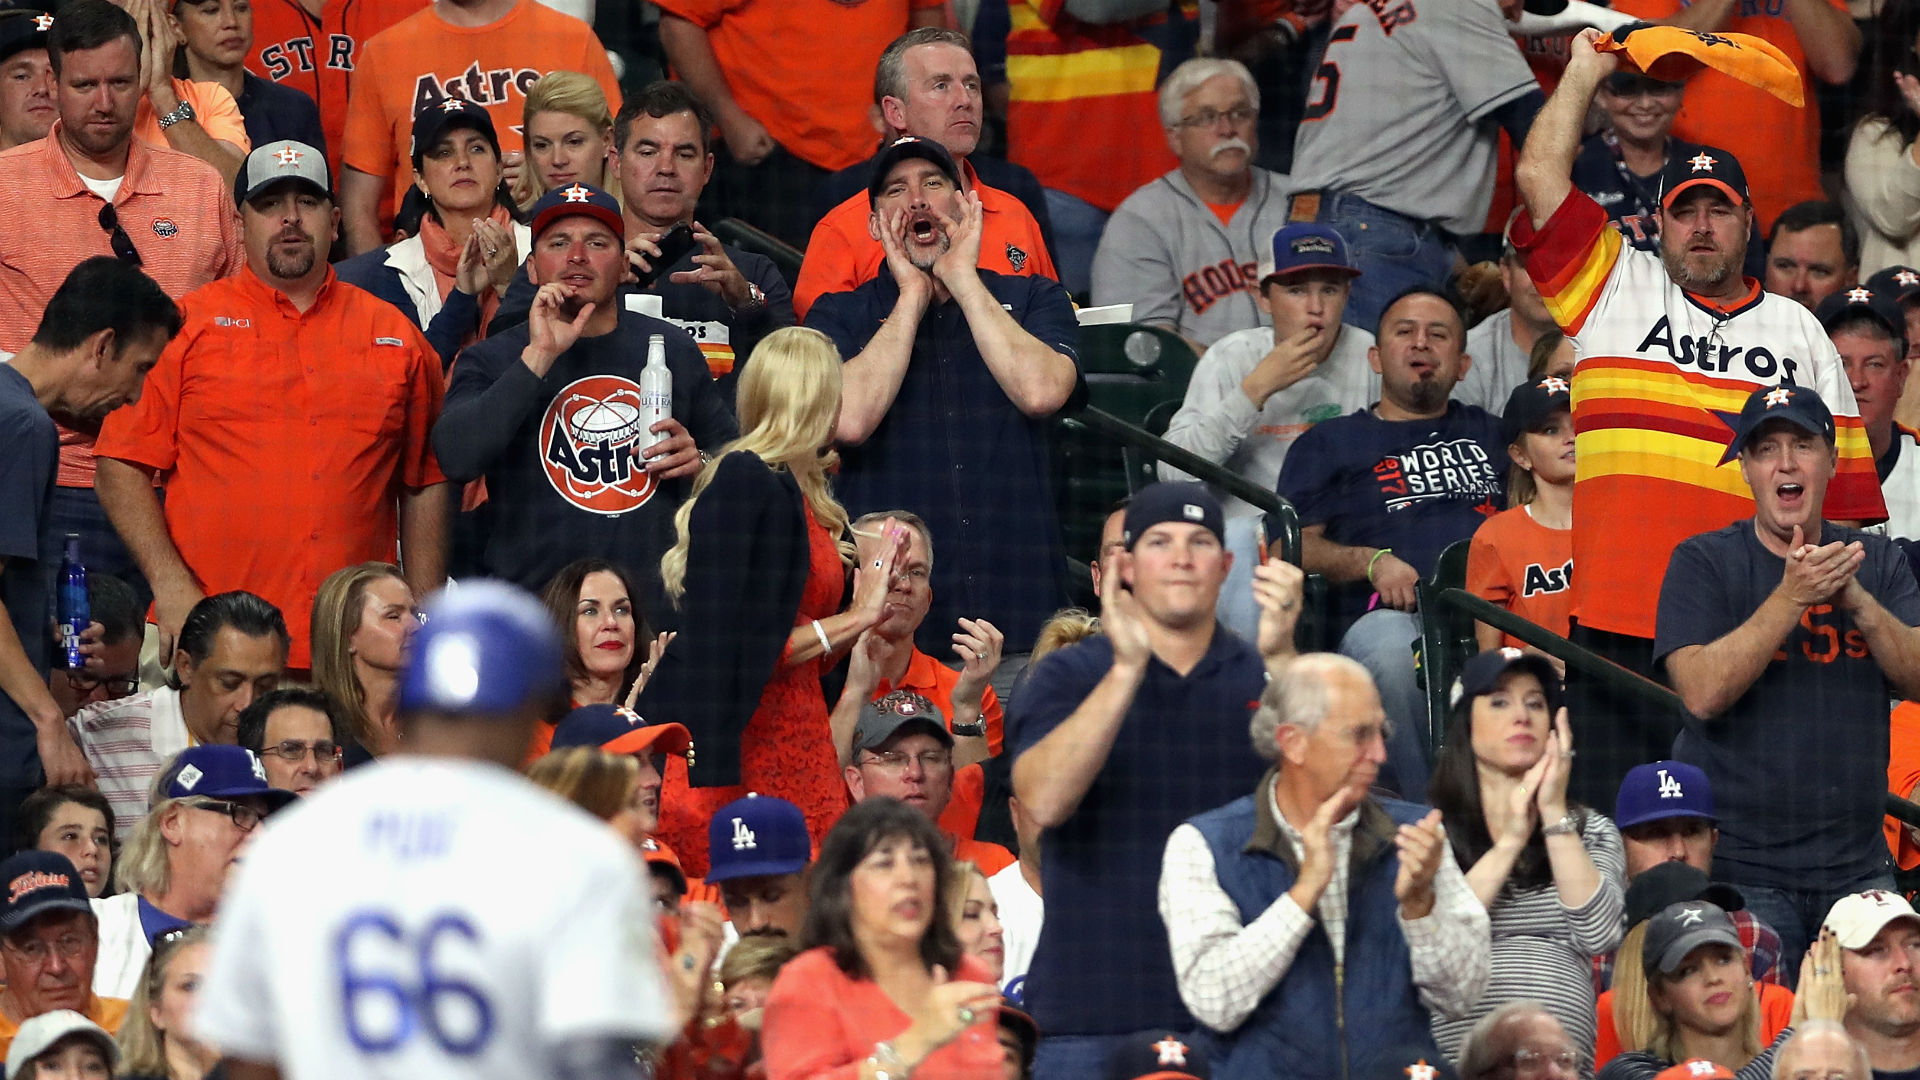 Family explains why Astros fan stole home run ball, threw it back